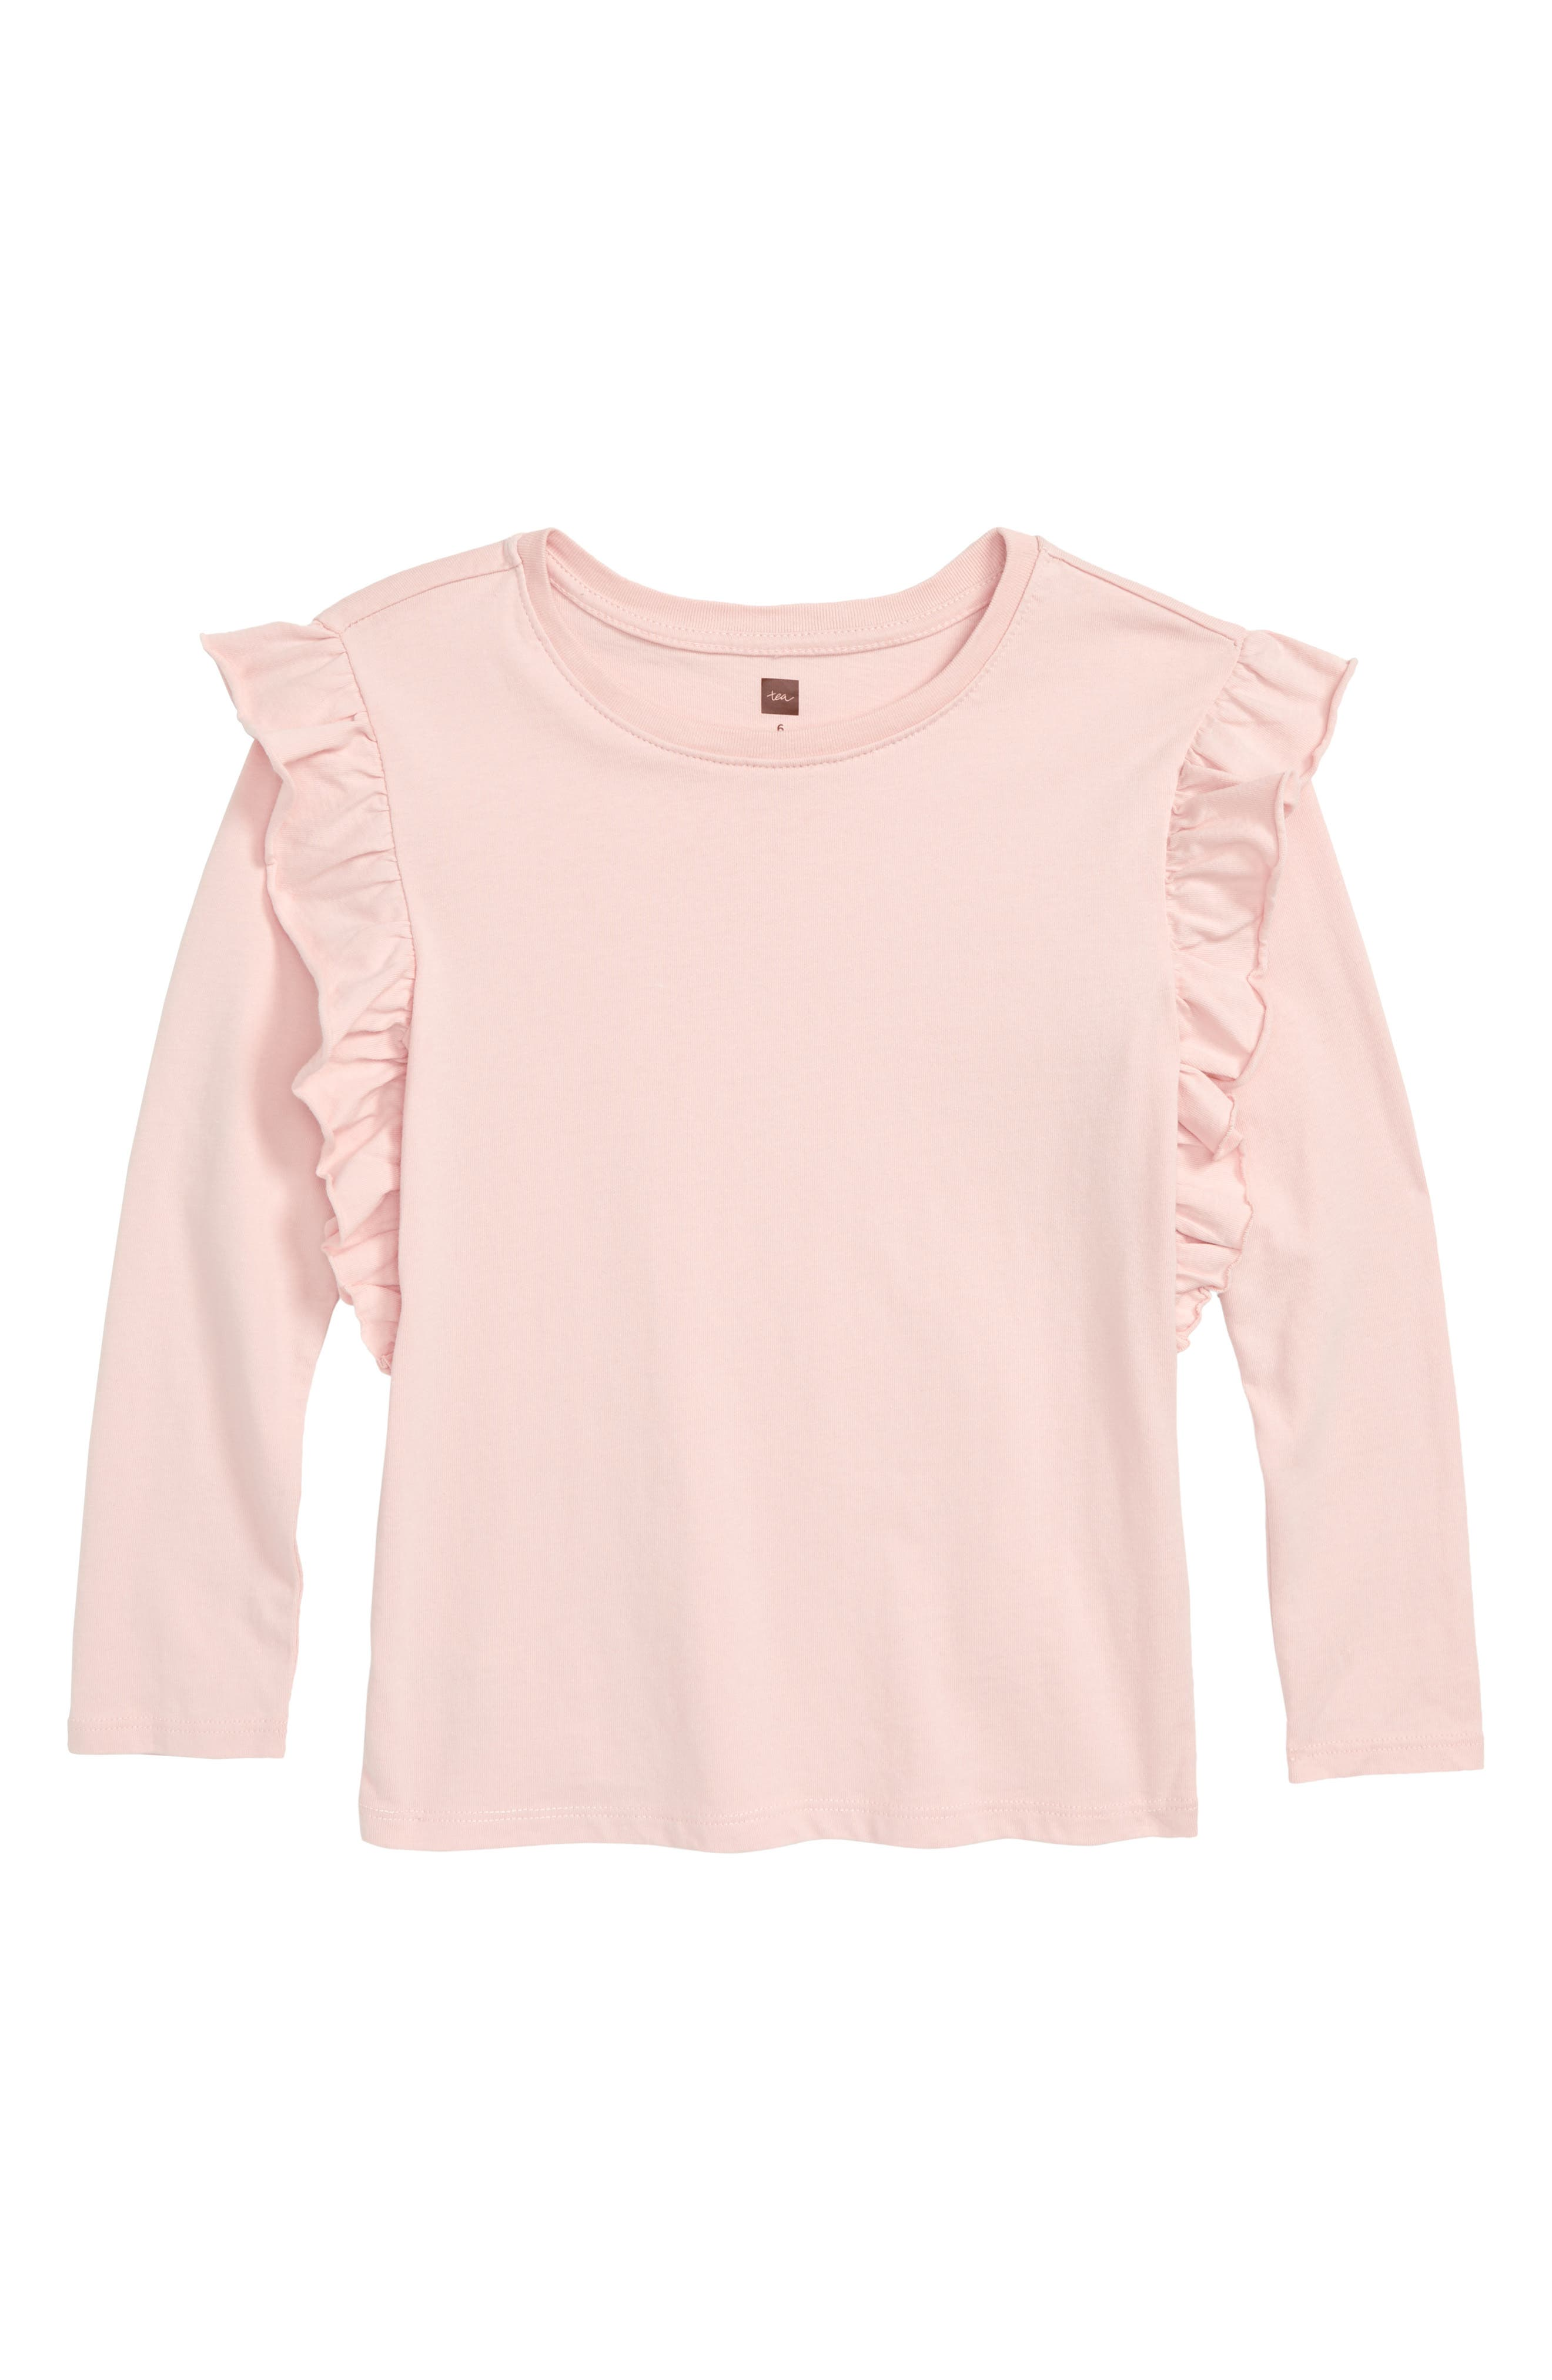 Ruffle Sleeve Top,                         Main,                         color, PINK SOLID